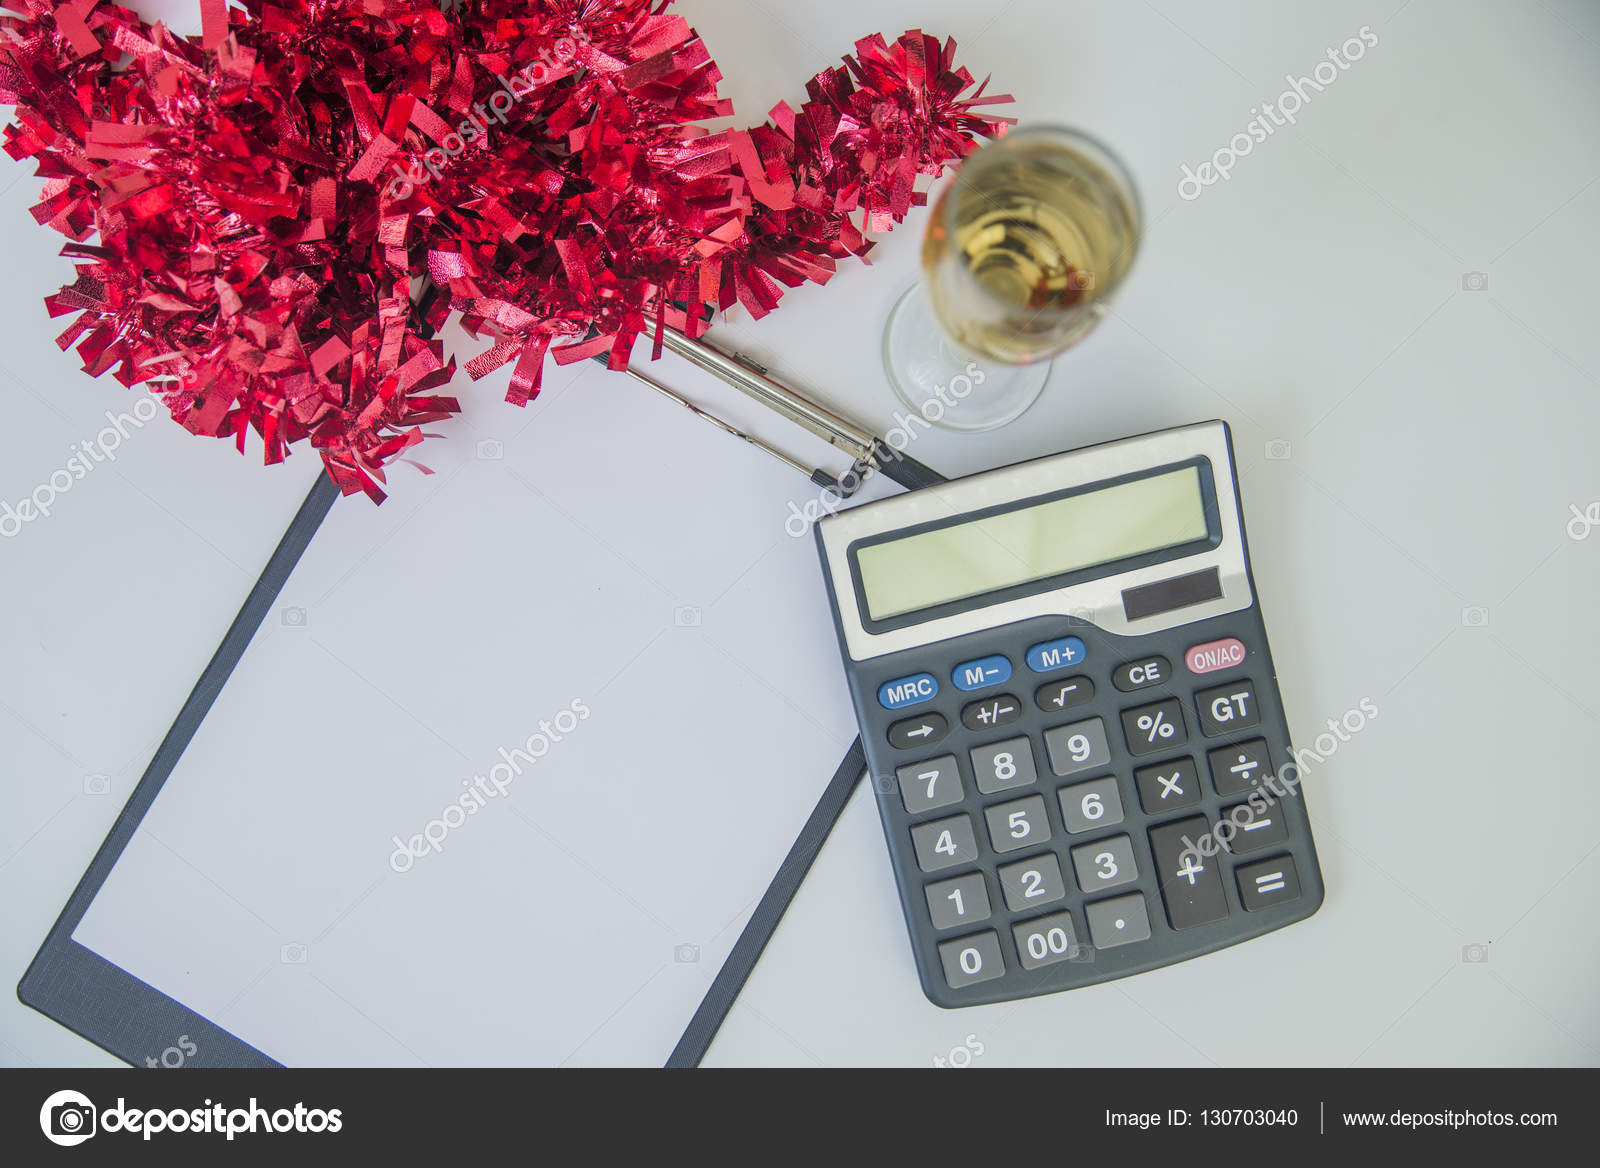 New Year's Financial Resolutions. Business Christmas of calculator, Christmas decorations, champagne — Stock